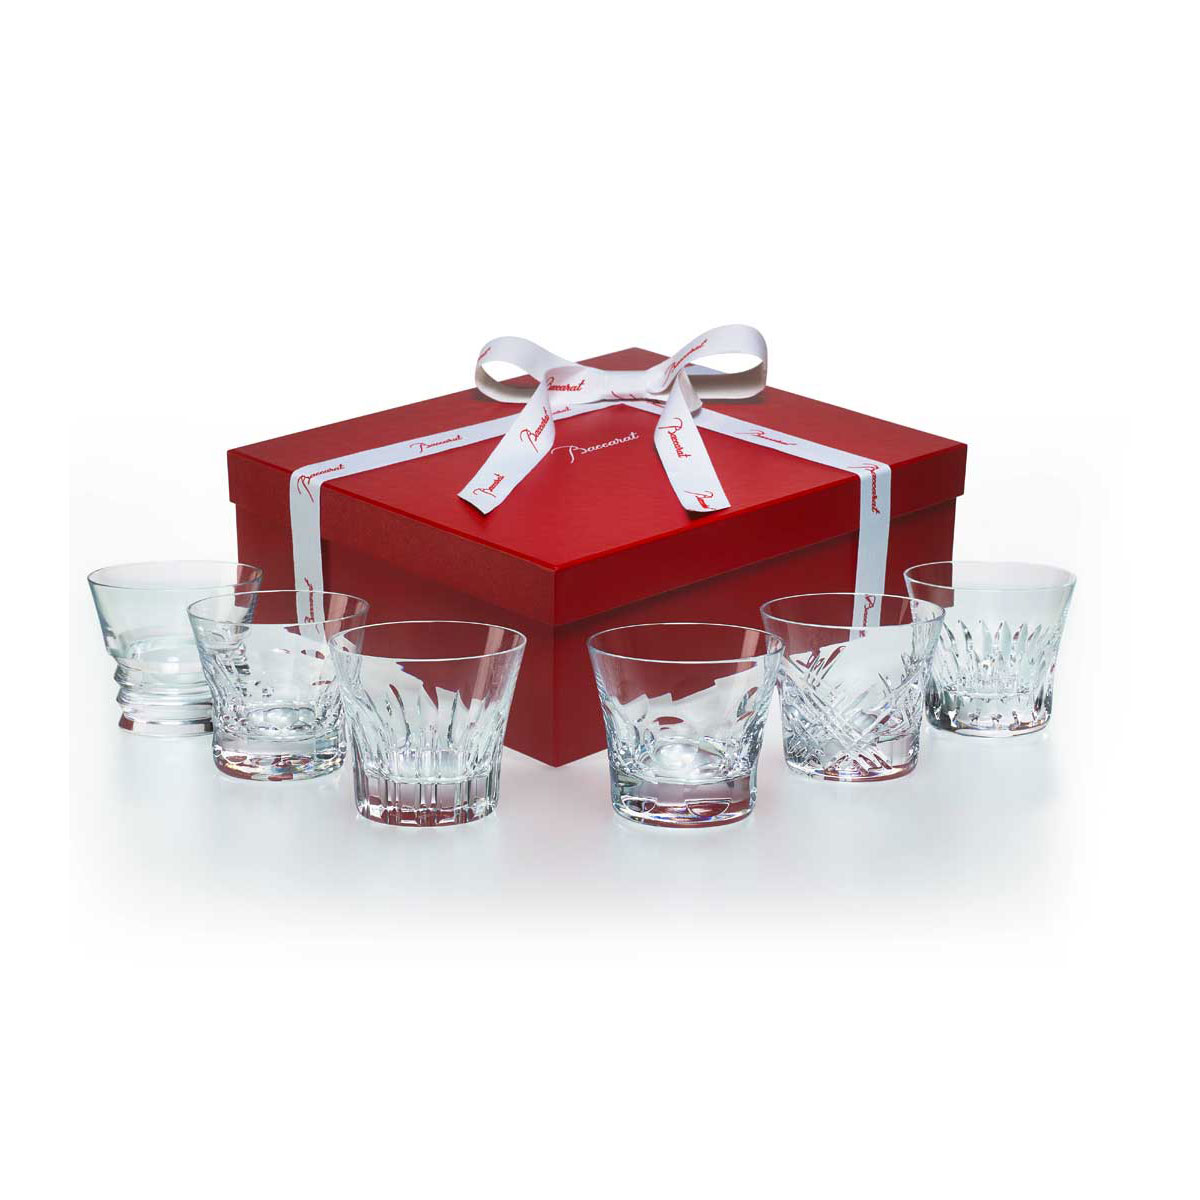 Baccarat Crystal, Everyday Classic Assorted DOF Tumblers, Gift Boxed Set of Six